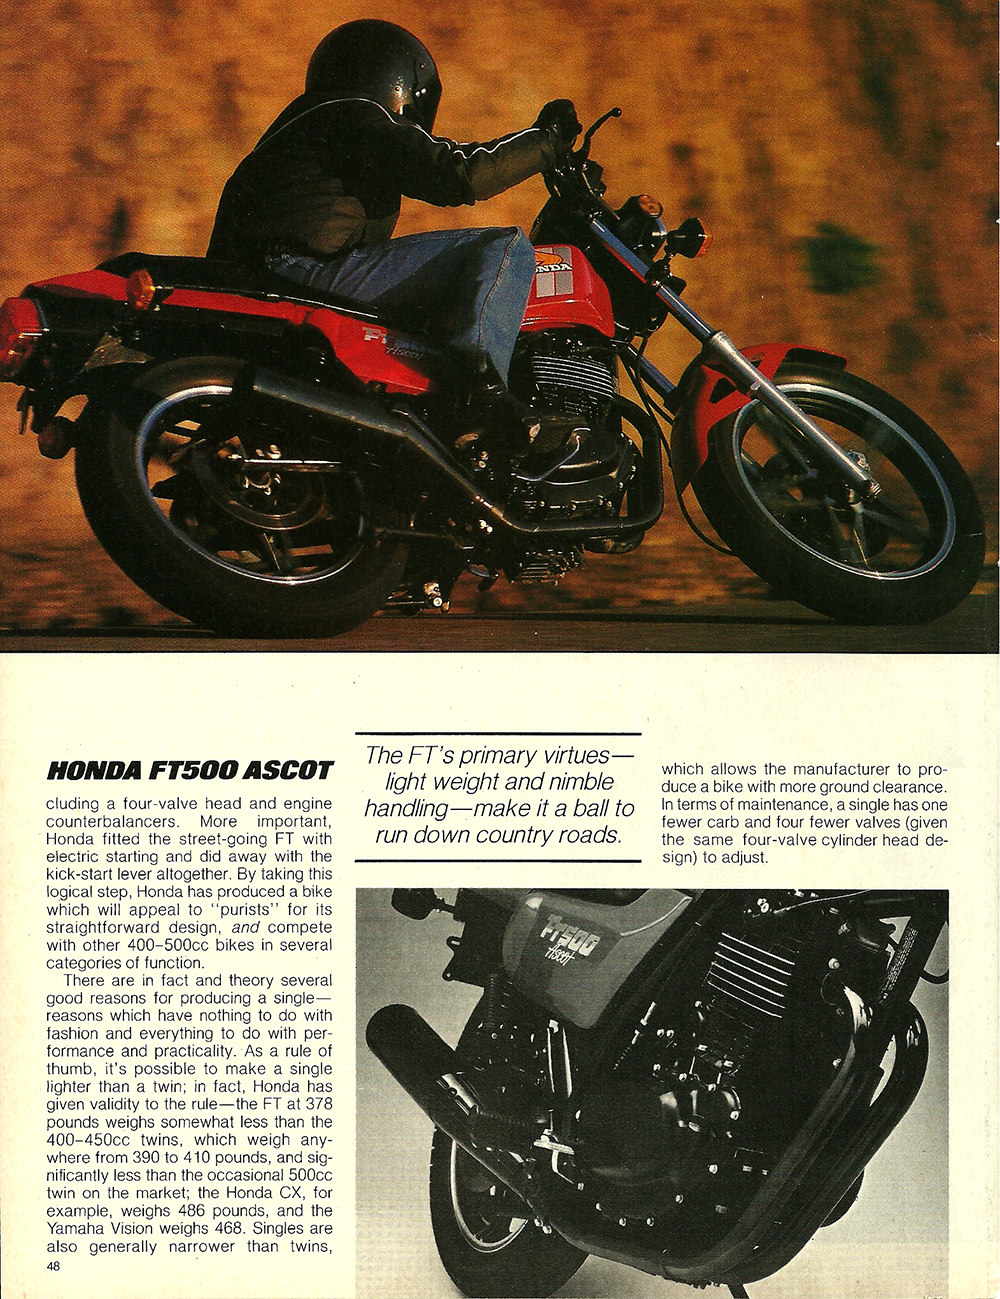 1982 Honda FT500 Ascot road test 2 03.jpg